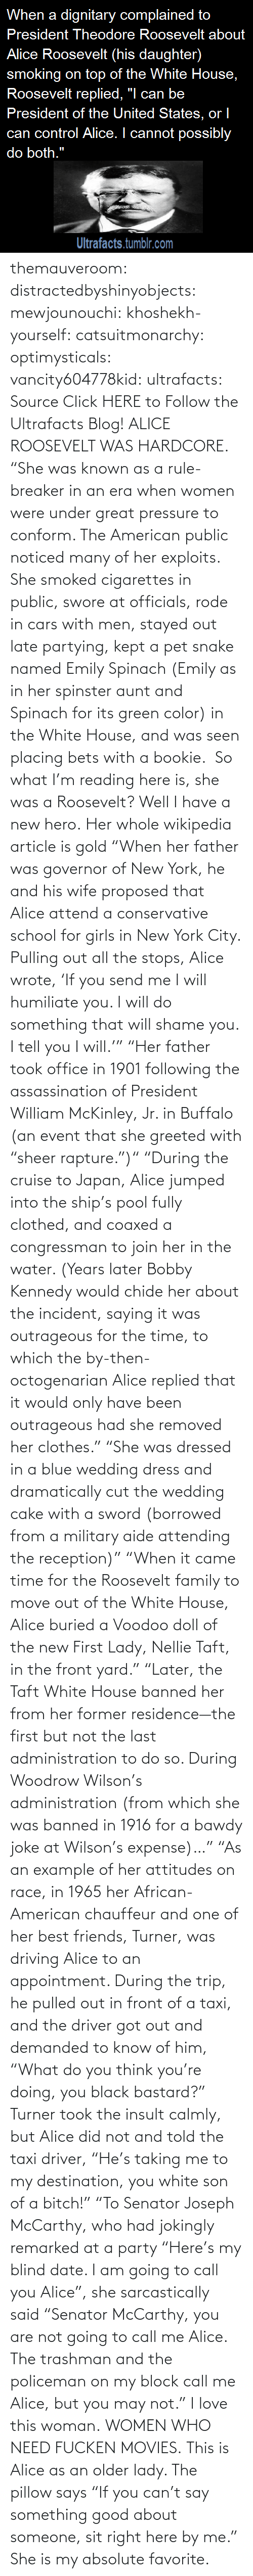 "Rule: themauveroom: distractedbyshinyobjects:  mewjounouchi:  khoshekh-yourself:  catsuitmonarchy:  optimysticals:  vancity604778kid:  ultrafacts:     Source Click HERE to Follow the Ultrafacts Blog!     ALICE ROOSEVELT WAS HARDCORE. ""She was known as a rule-breaker in an era when women were under great pressure to conform. The American public noticed many of her exploits. She smoked cigarettes in public, swore at officials, rode in cars with men, stayed out late partying, kept a pet snake named Emily Spinach (Emily as in her spinster aunt and Spinach for its green color) in the White House, and was seen placing bets with a bookie.    So what I'm reading here is, she was a Roosevelt?  Well I have a new hero.  Her whole wikipedia article is gold ""When her father was governor of New York, he and his wife proposed that Alice attend a conservative school for girls in New York City. Pulling out all the stops, Alice wrote, 'If you send me I will humiliate you. I will do something that will shame you. I tell you I will.'"" ""Her father took office in 1901 following the assassination of President William McKinley, Jr. in Buffalo (an event that she greeted with ""sheer rapture."")"" ""During the cruise to Japan, Alice jumped into the ship's pool fully clothed, and coaxed a congressman to join her in the water. (Years later Bobby Kennedy would chide her about the incident, saying it was outrageous for the time, to which the by-then-octogenarian Alice replied that it would only have been outrageous had she removed her clothes."" ""She was dressed in a blue wedding dress and dramatically cut the wedding cake with a sword (borrowed from a military aide attending the reception)"" ""When it came time for the Roosevelt family to move out of the White House, Alice buried a Voodoo doll of the new First Lady, Nellie Taft, in the front yard."" ""Later, the Taft White House banned her from her former residence—the first but not the last administration to do so. During Woodrow Wilson's administration (from which she was banned in 1916 for a bawdy joke at Wilson's expense)…"" ""As an example of her attitudes on race, in 1965 her African-American chauffeur and one of her best friends, Turner, was driving Alice to an appointment. During the trip, he pulled out in front of a taxi, and the driver got out and demanded to know of him, ""What do you think you're doing, you black bastard?"" Turner took the insult calmly, but Alice did not and told the taxi driver, ""He's taking me to my destination, you white son of a bitch!"" ""To Senator Joseph McCarthy, who had jokingly remarked at a party ""Here's my blind date. I am going to call you Alice"", she sarcastically said ""Senator McCarthy, you are not going to call me Alice. The trashman and the policeman on my block call me Alice, but you may not.""  I love this woman.  WOMEN WHO NEED FUCKEN MOVIES.   This is Alice as an older lady. The pillow says ""If you can't say something good about someone, sit right here by me.""  She is my absolute favorite."